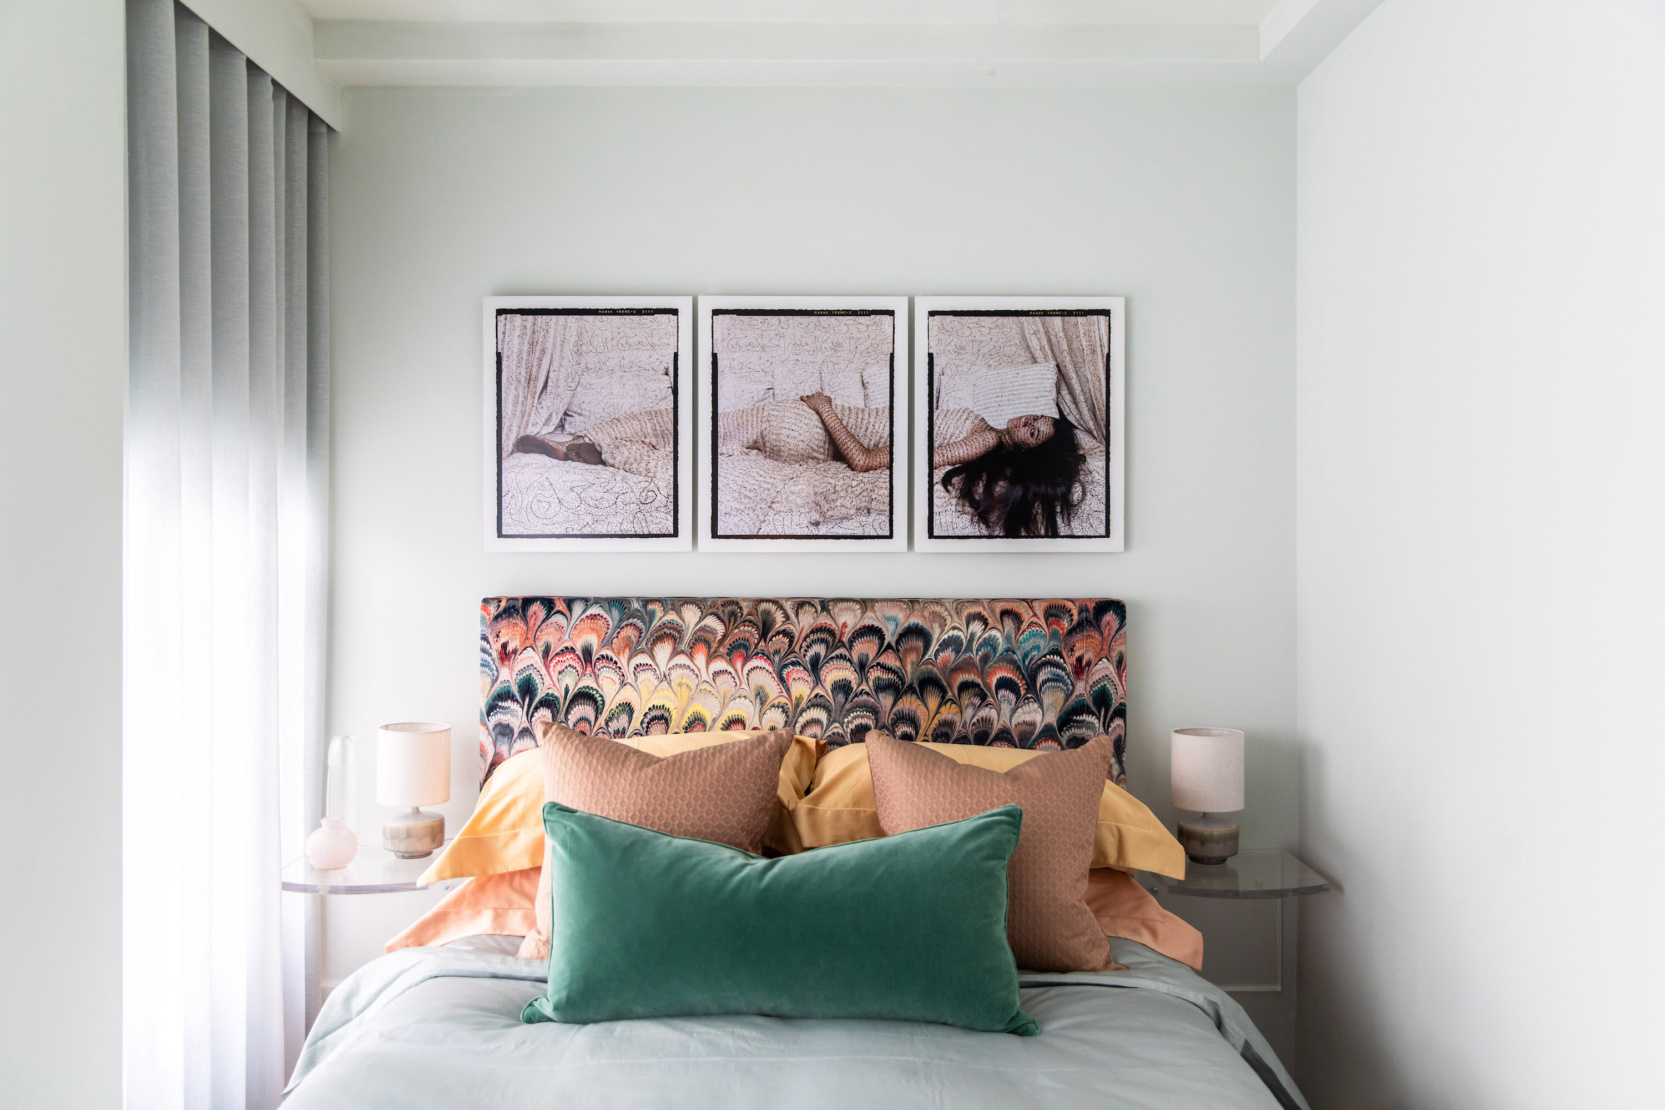 Bedroom with work by Lalla Essaydi.